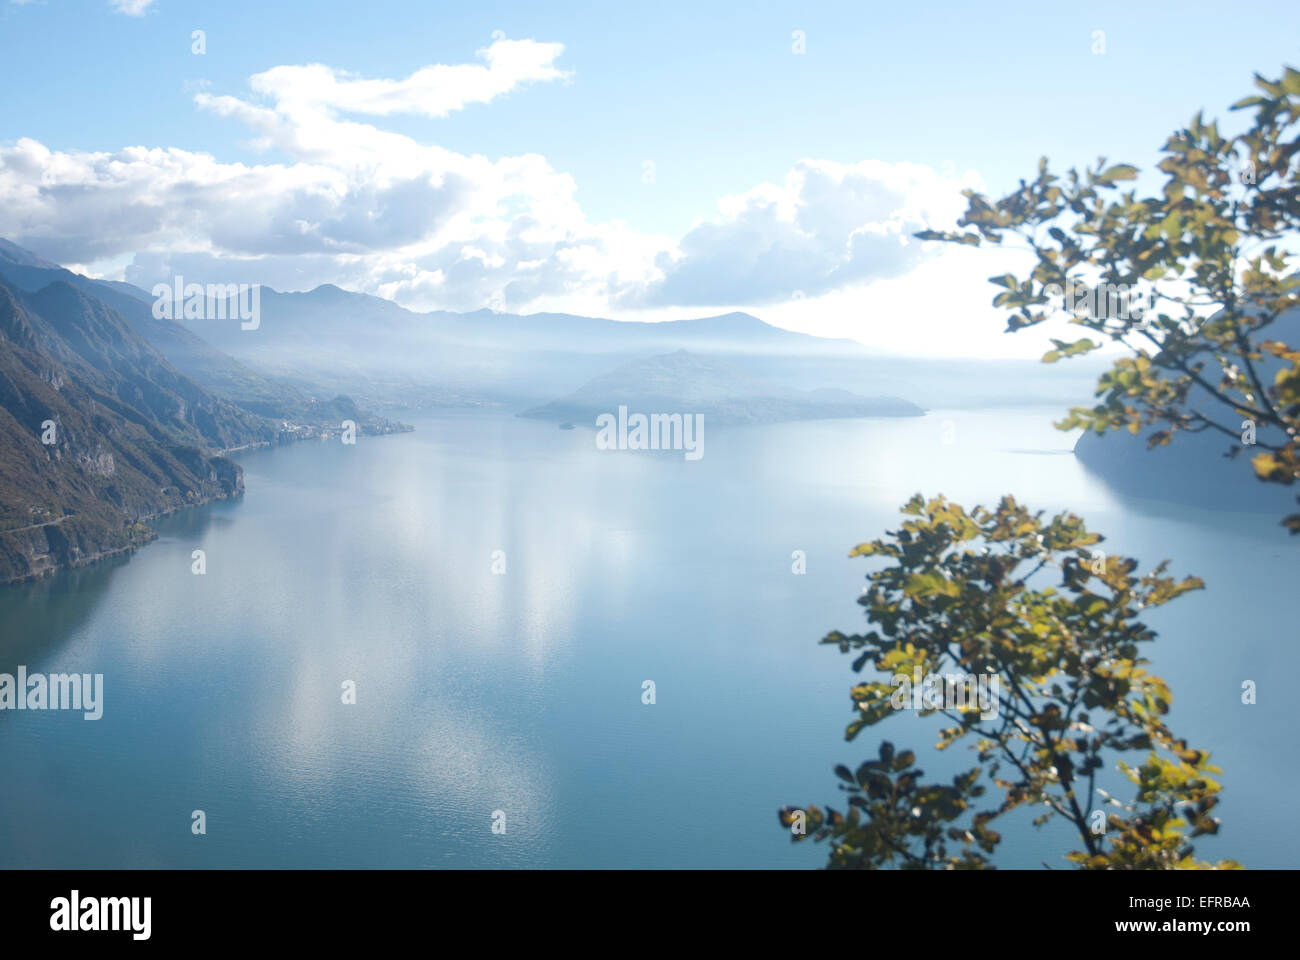 Lake Iseo Italy - Stock Image